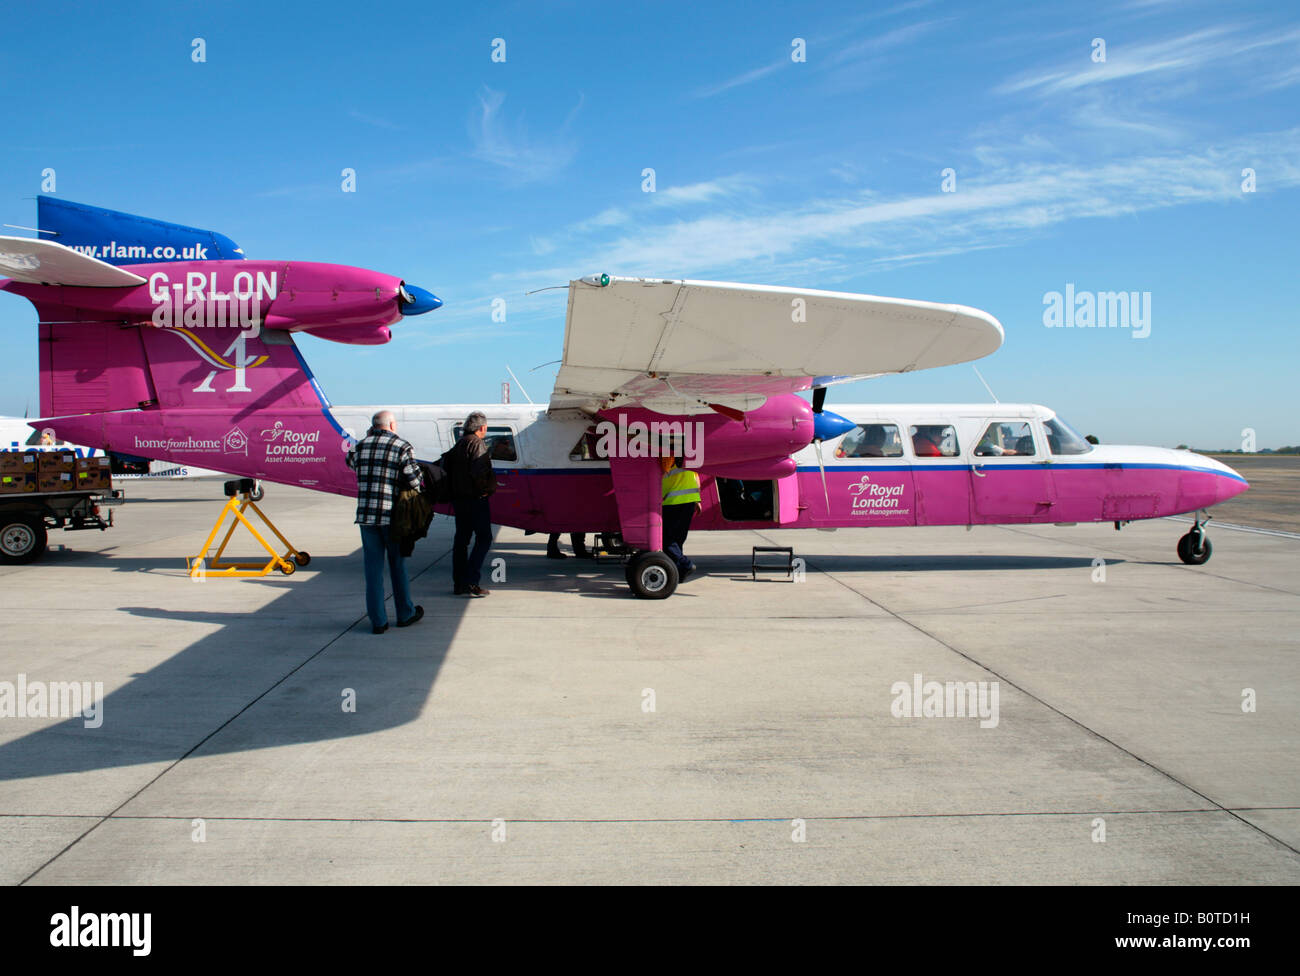 airoplane at the airport, Guernsey Island - Stock Image